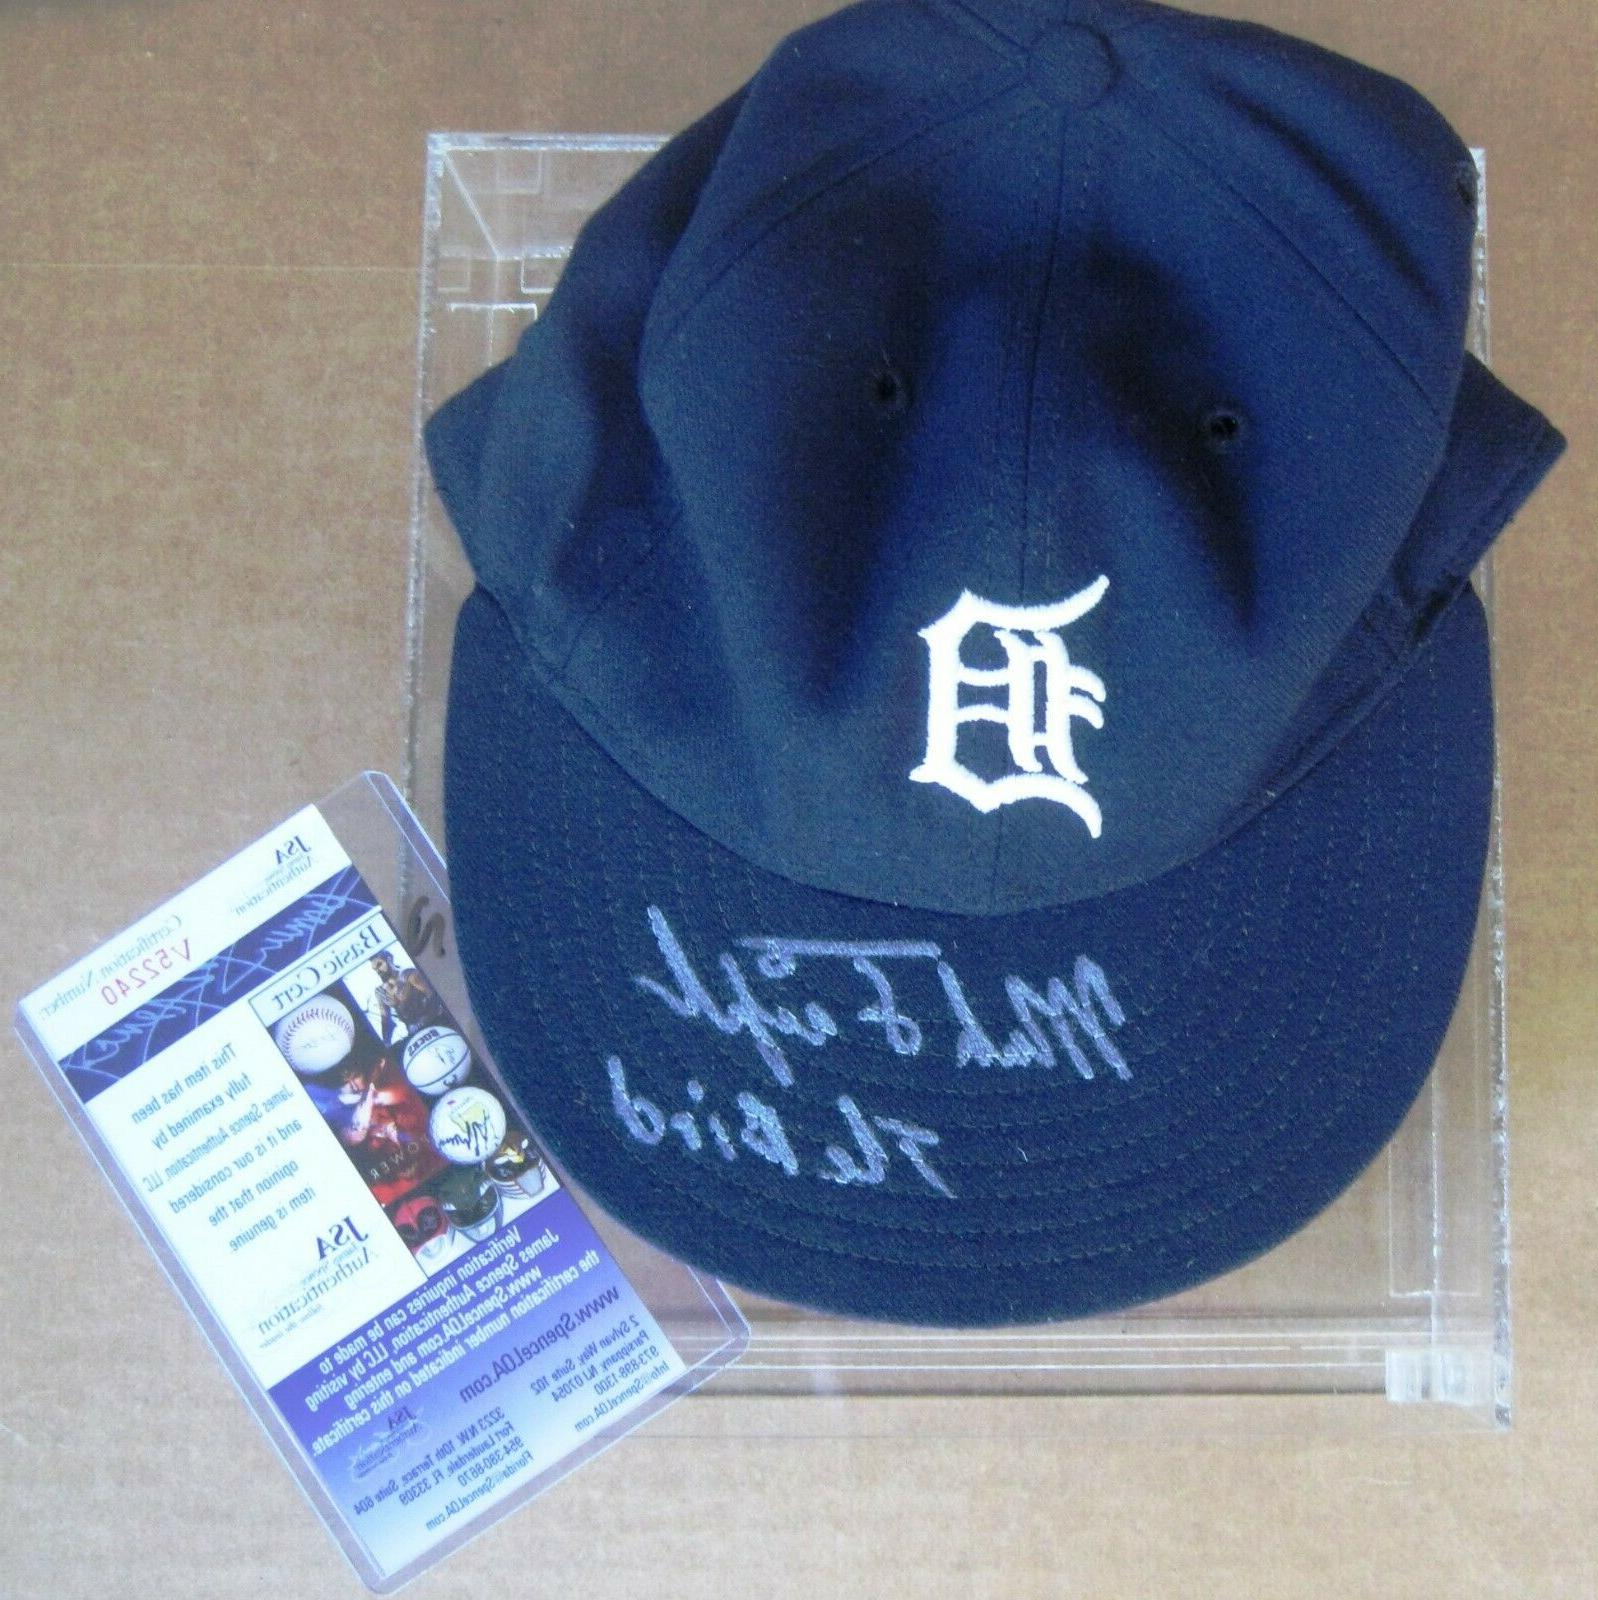 Detroit Tigers' Mark  Fidrych Signed cap with JSA COA & disp